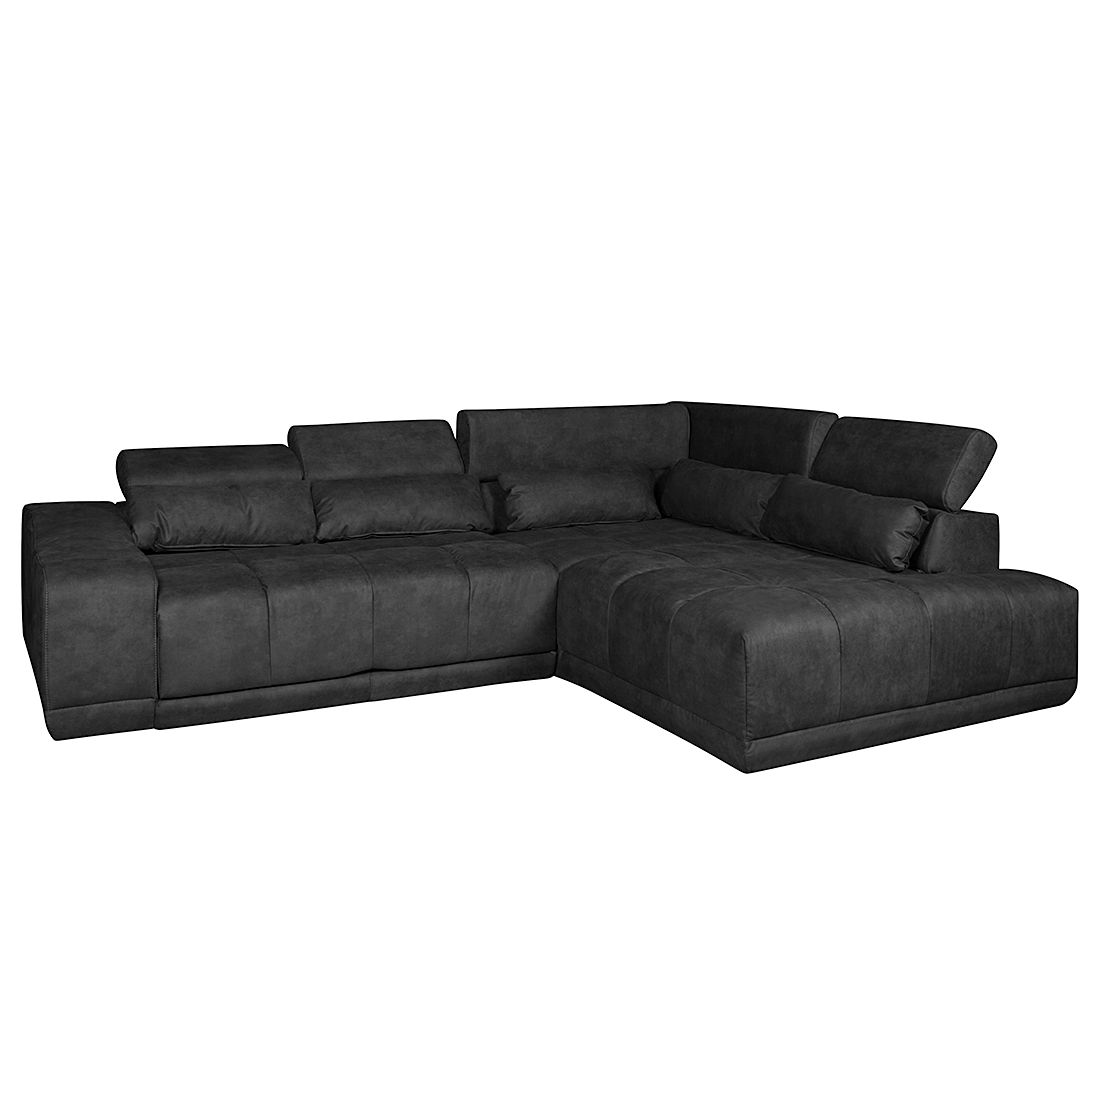 ecksofa paces mit relaxfunktion microfaser longchair ottomane davorstehend rechts. Black Bedroom Furniture Sets. Home Design Ideas